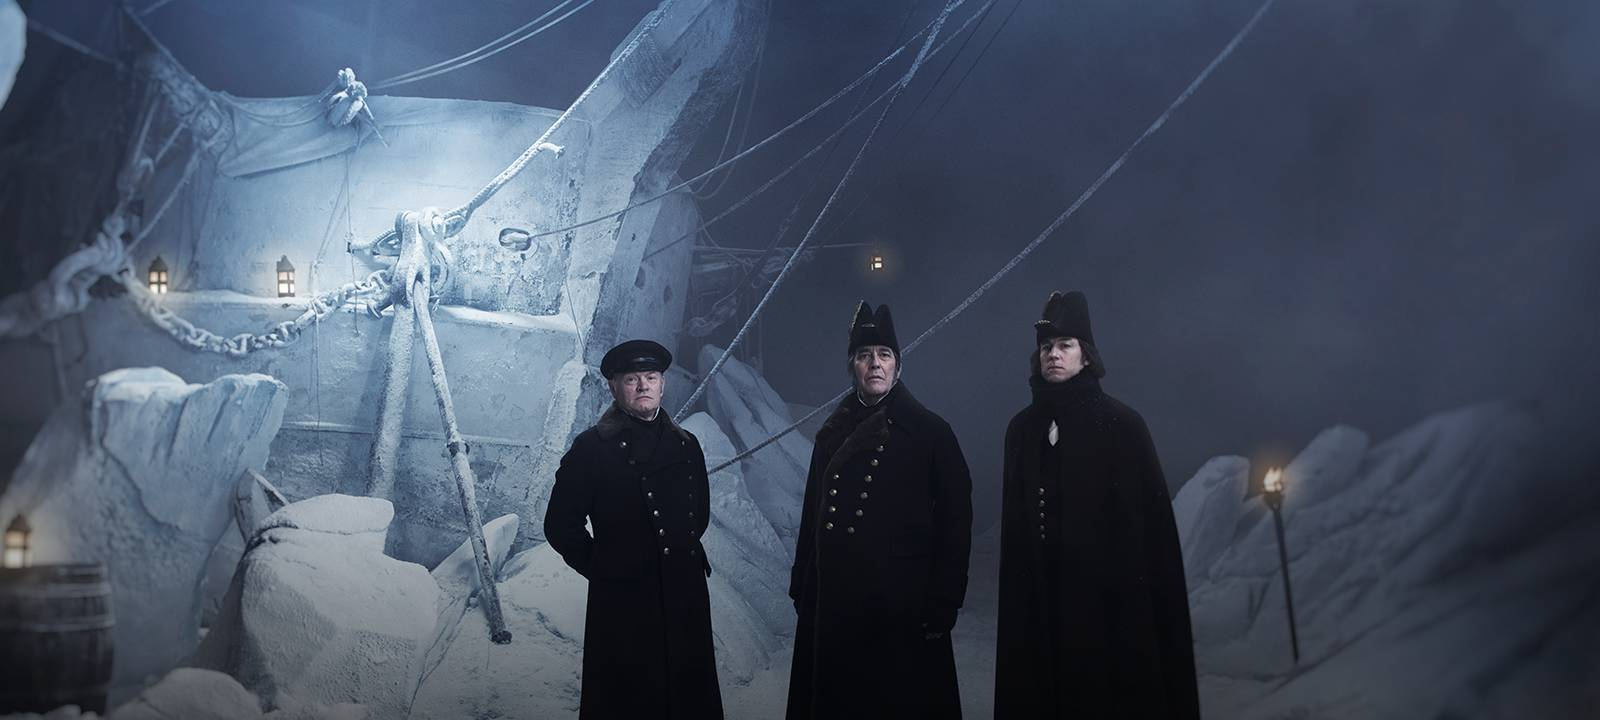 Ciarán Hinds, Jared Harris, and Tobias Menzies in The Terror (2018)